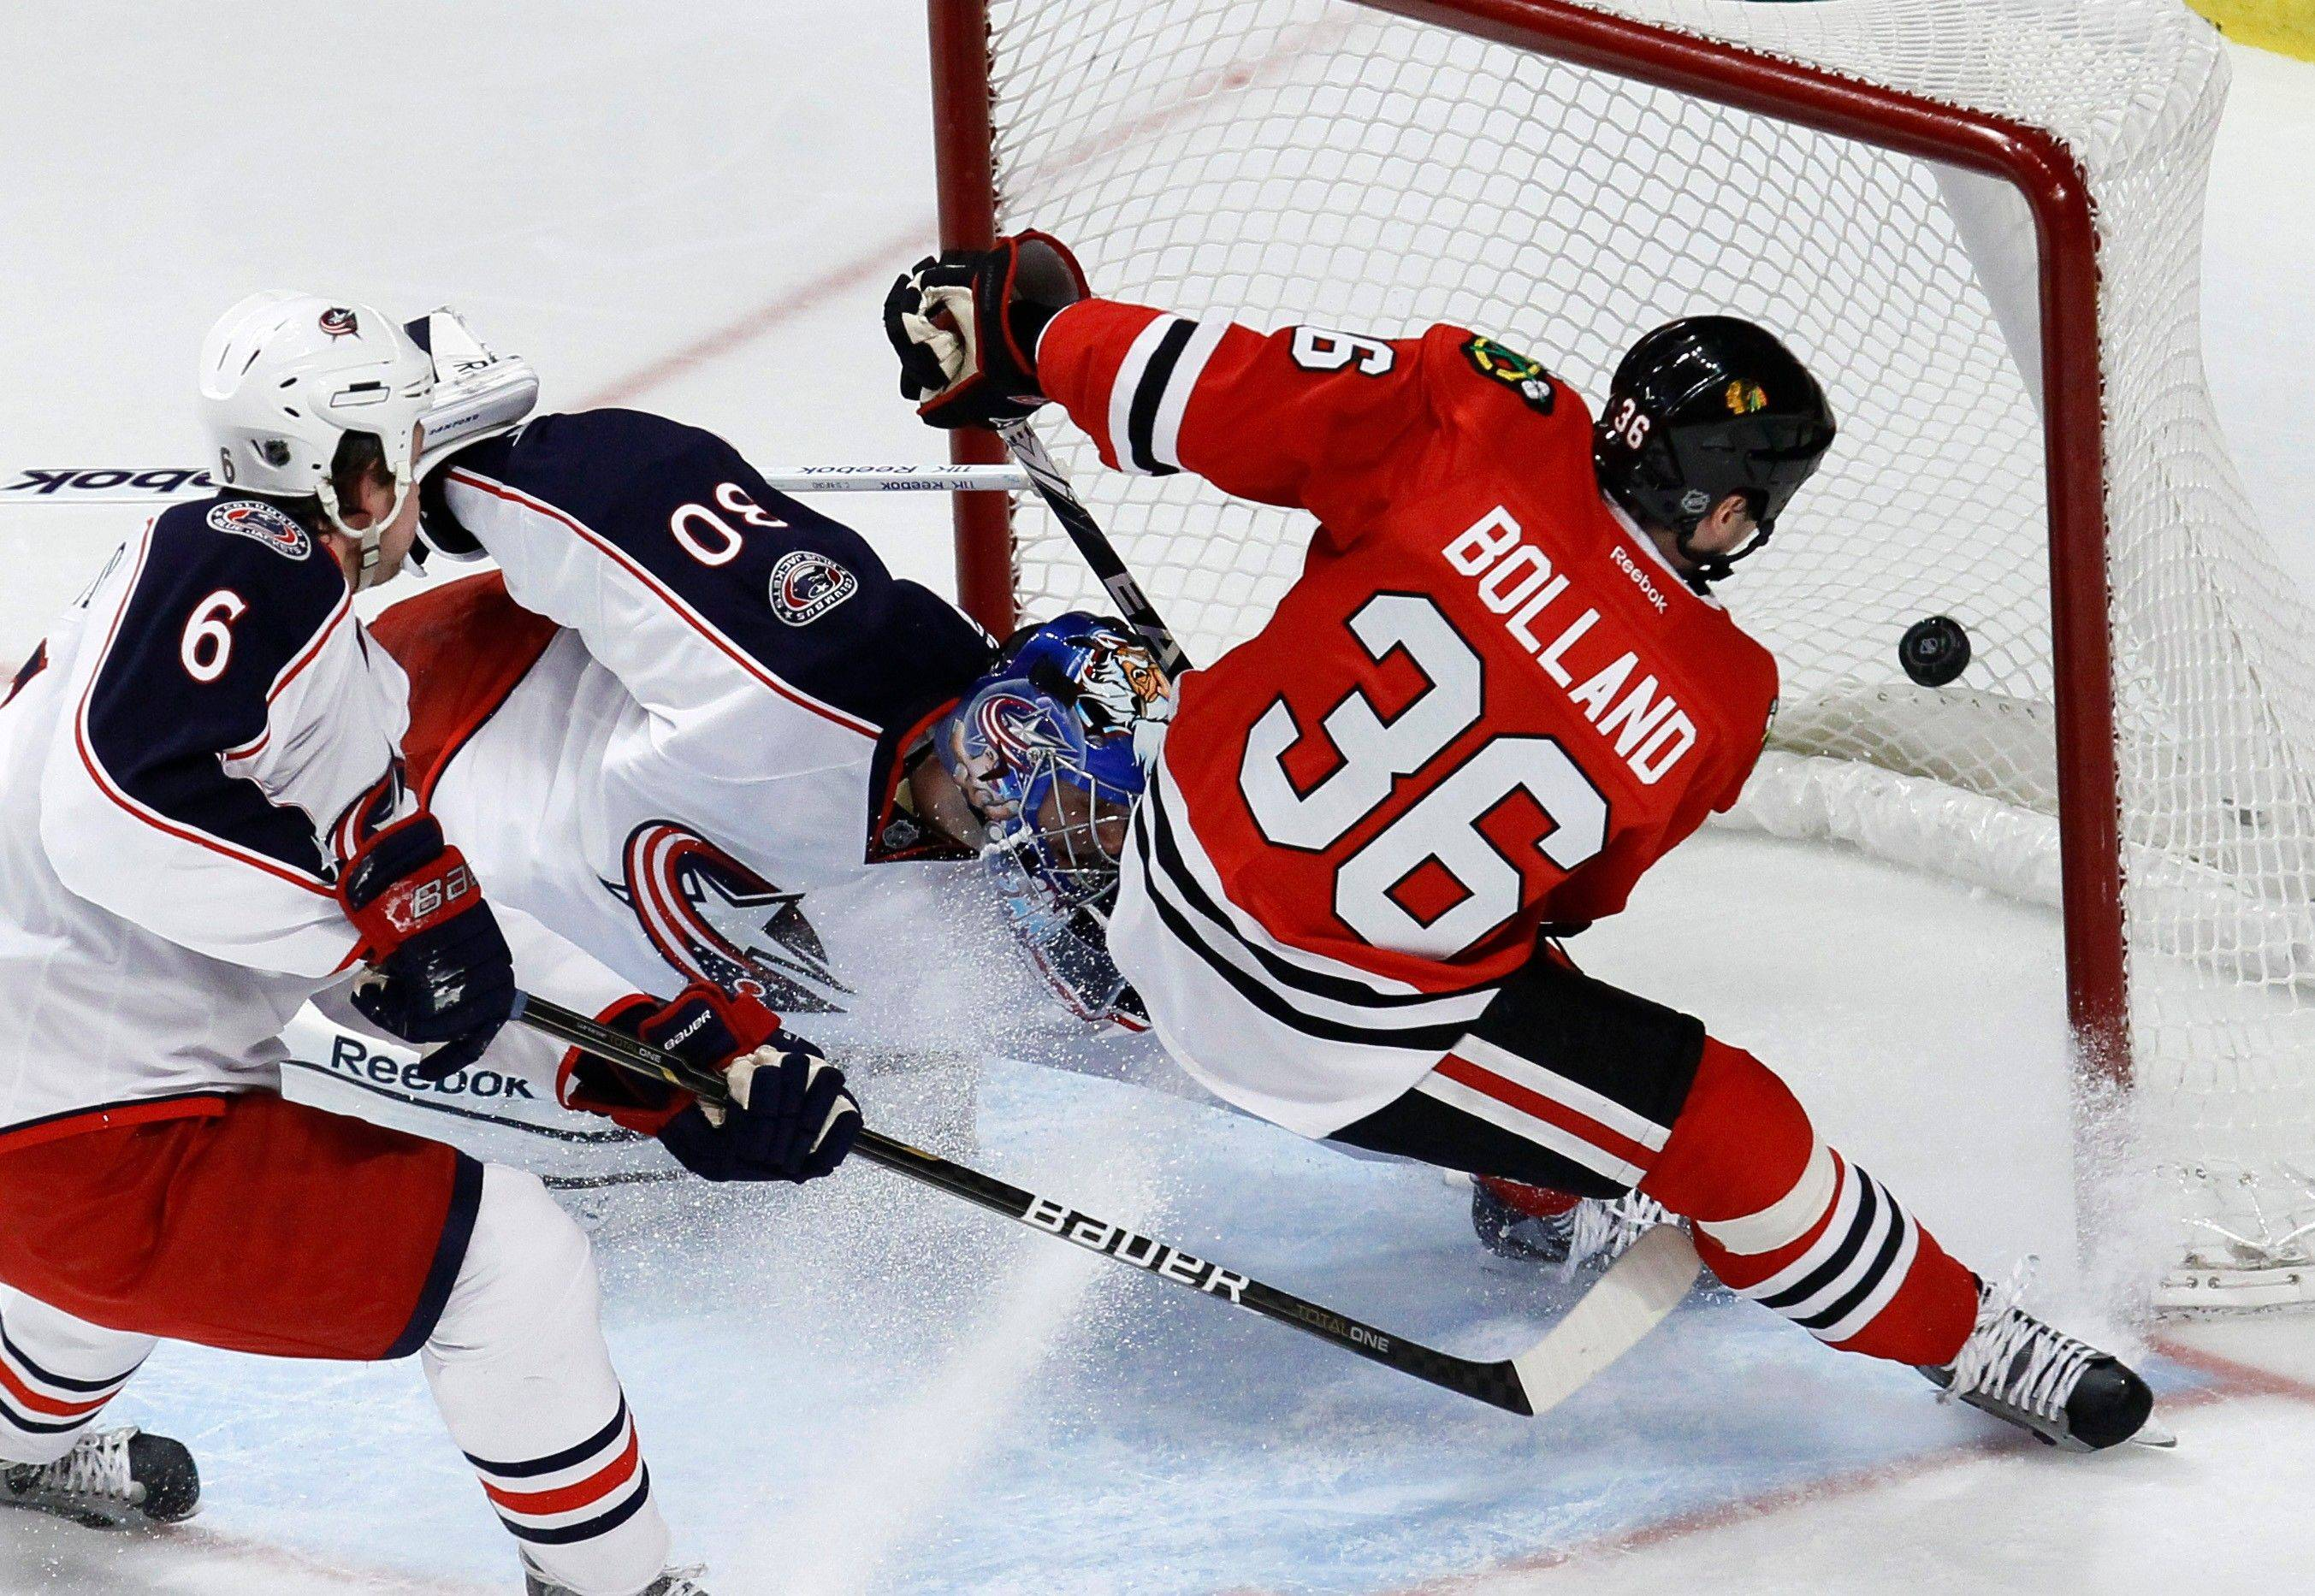 Hossa has ability to heat up teammates' games